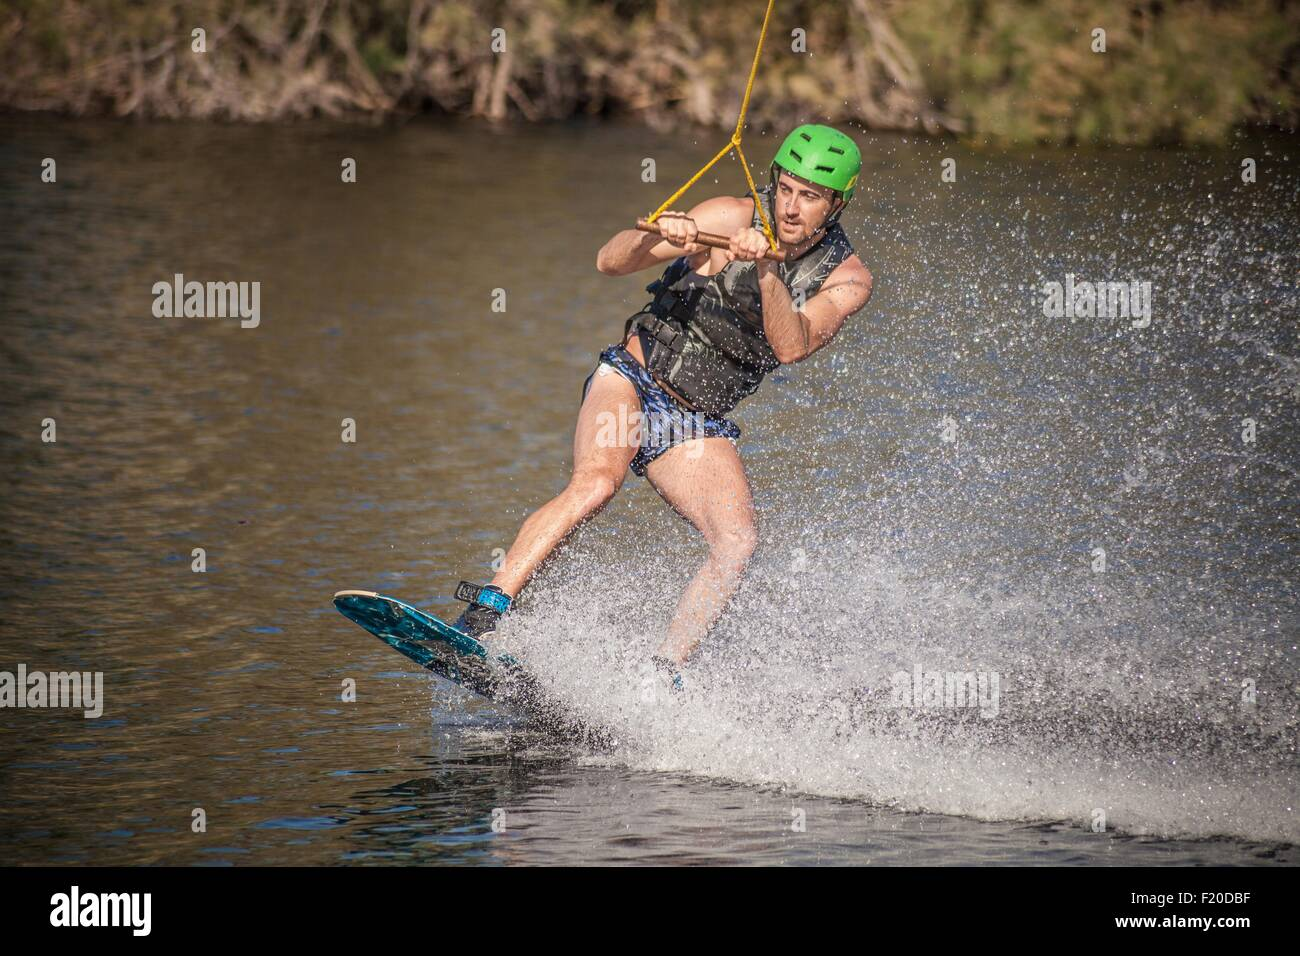 Young male wakeboarder swerving in sea, Cagliari, Sardinia, Italy - Stock Image